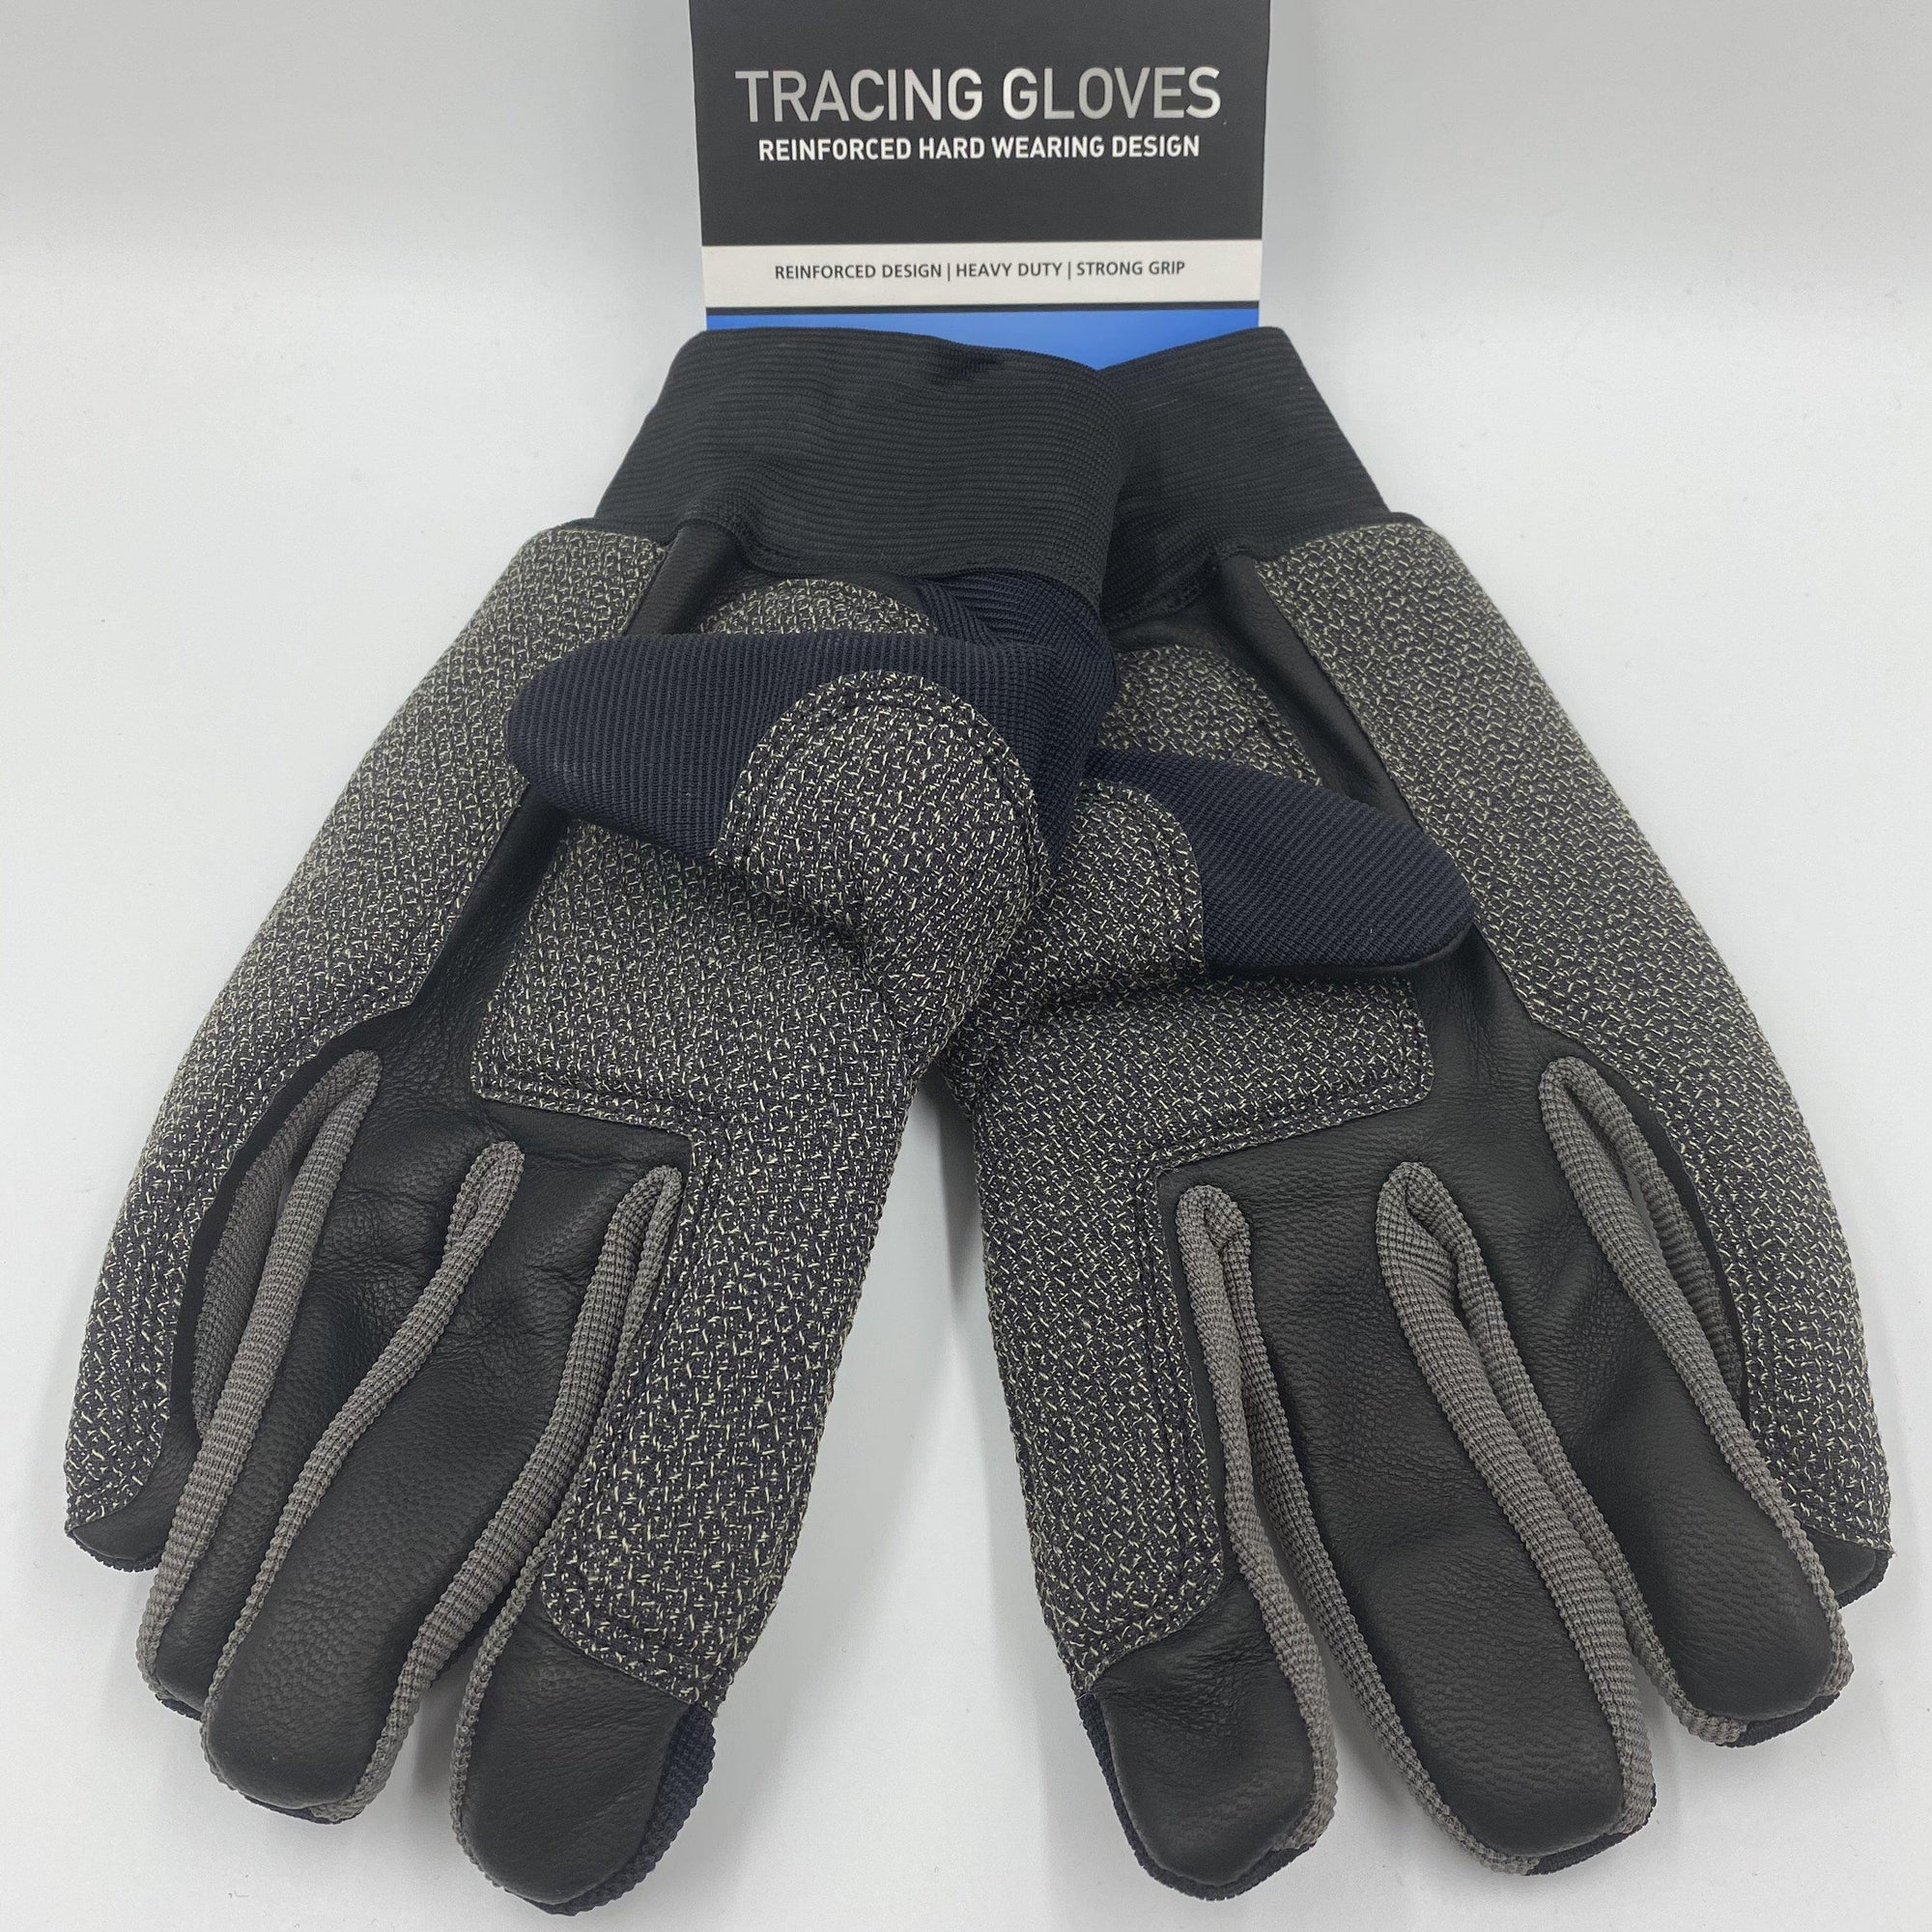 Shimano Tracing Gloves